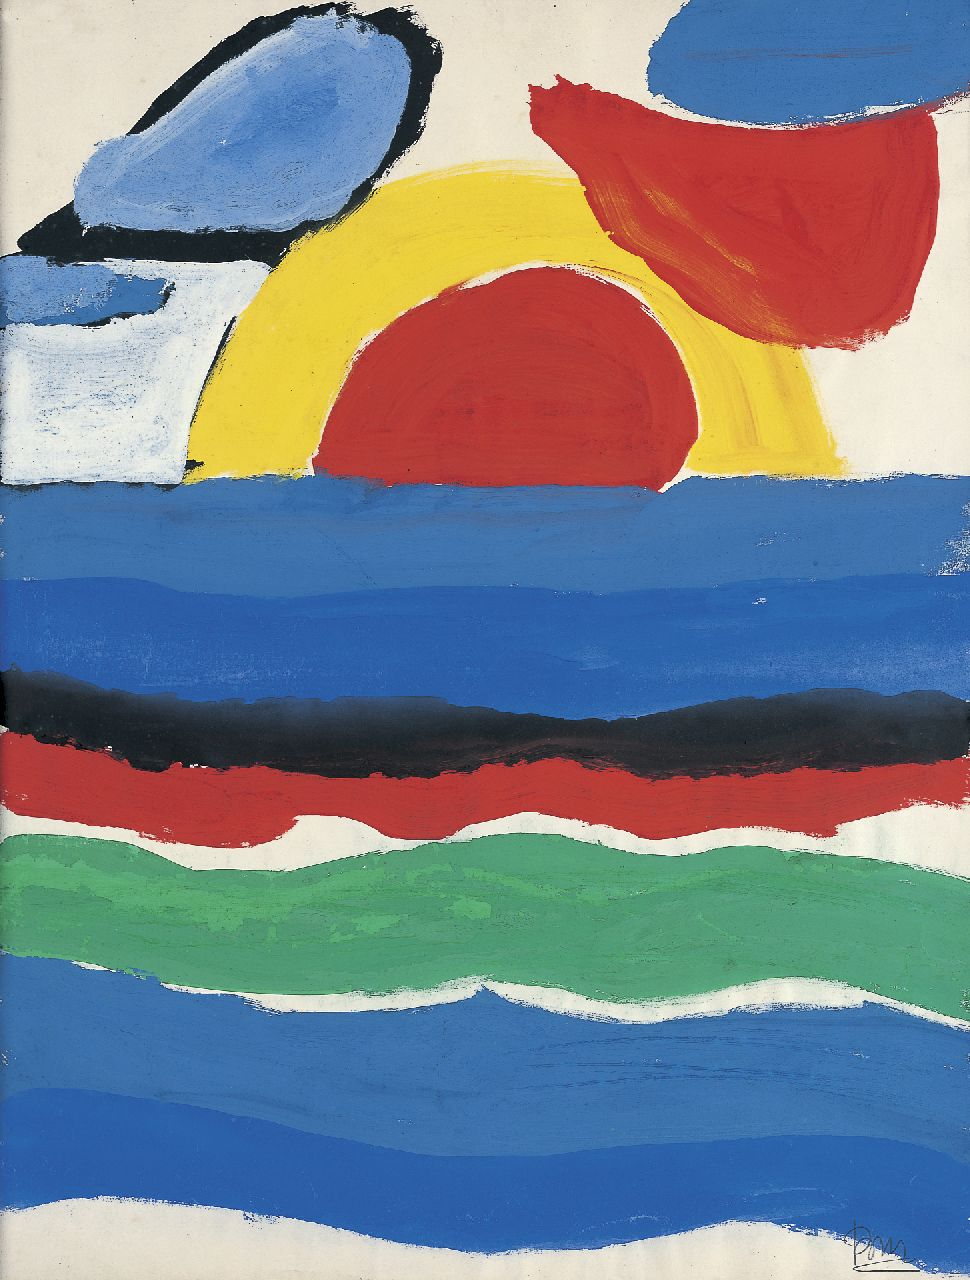 Benner G.  | Gerrit Benner, Sunset, gouache on paper 61.5 x 47.4 cm, signed l.r. and painted circa 1954